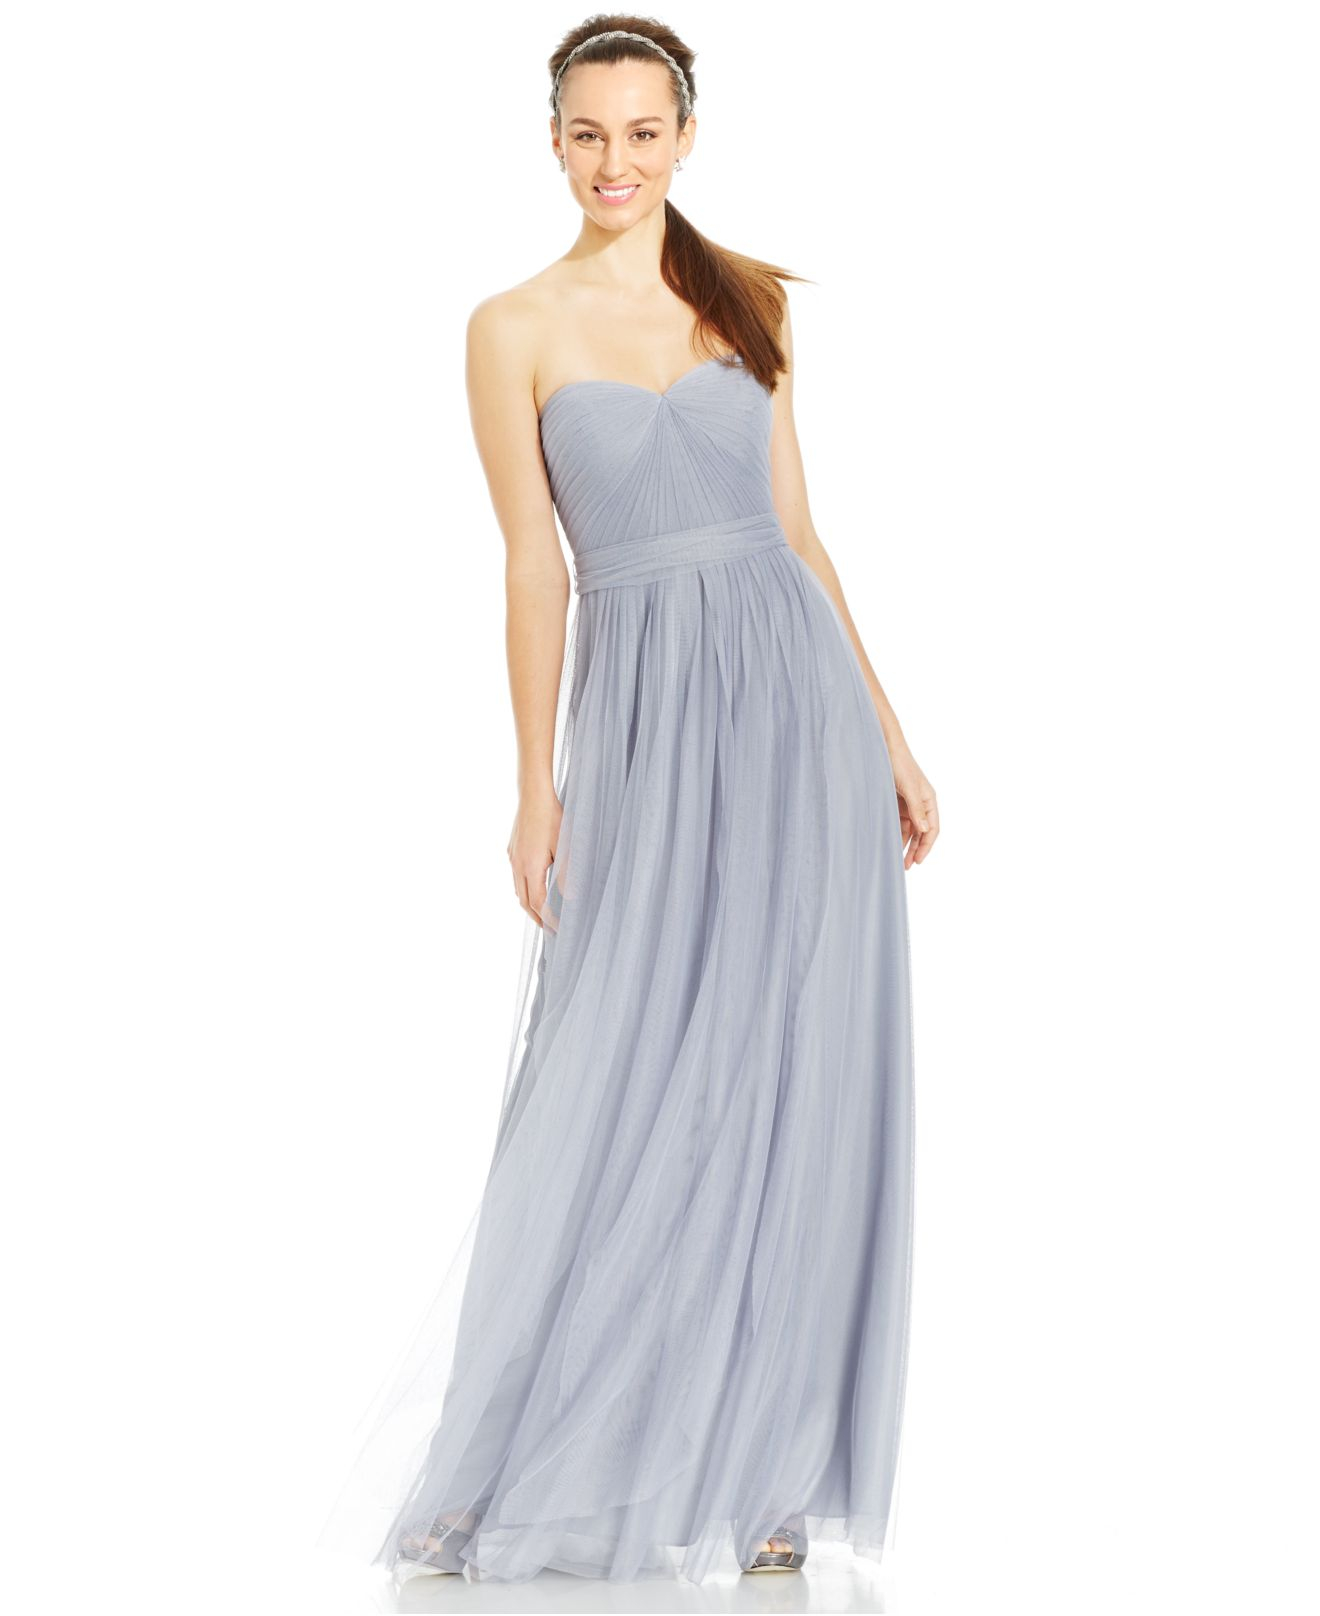 Lyst - Adrianna Papell Pleated Strapless Tulle Gown in Metallic